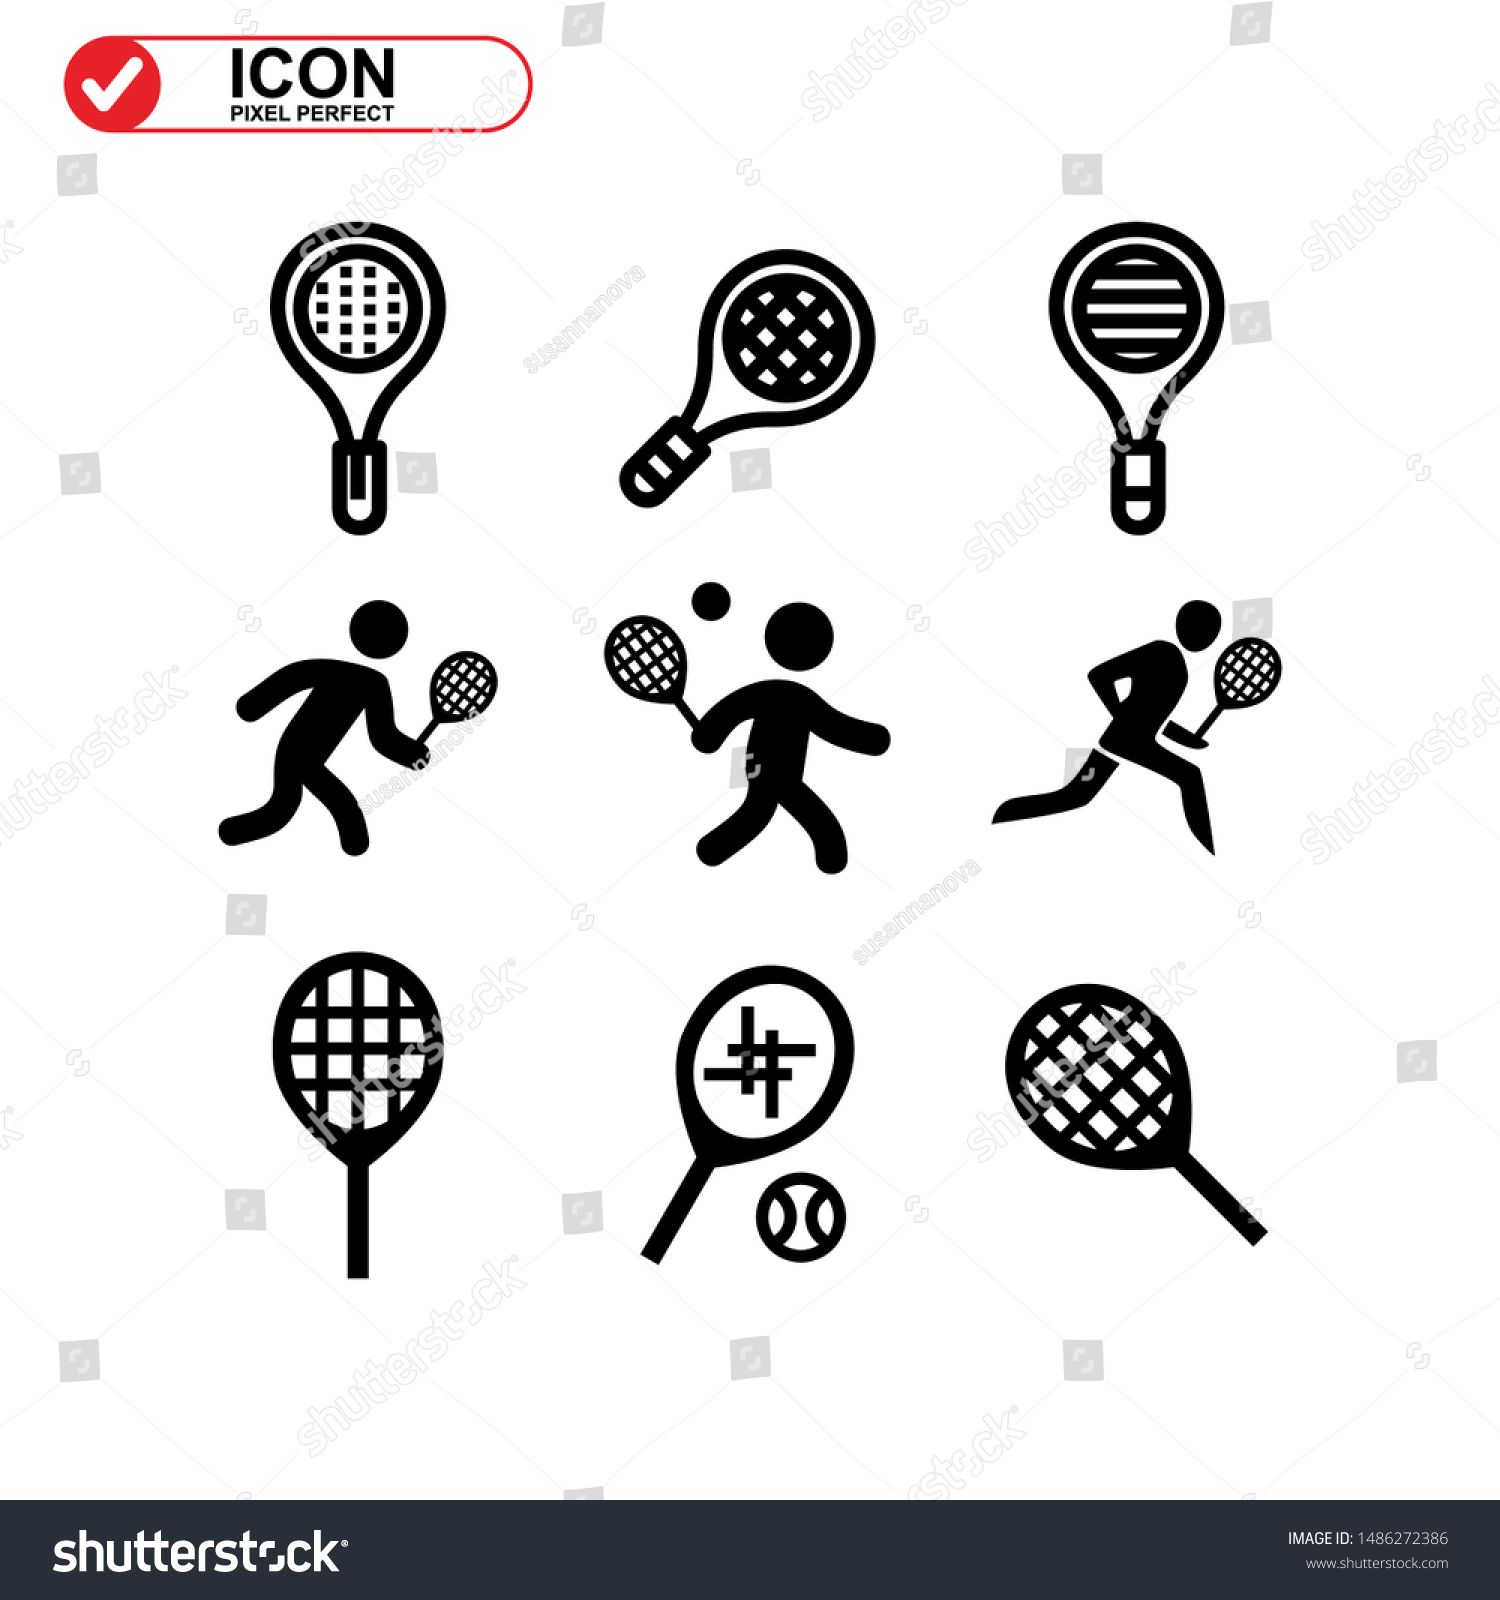 Tennis Icon Isolated Sign Symbol Vector Illustration Collection Of High Quality Black Style Vector Icons N Spon In 2020 Art Videos Tutorials Vector Icons Art Videos